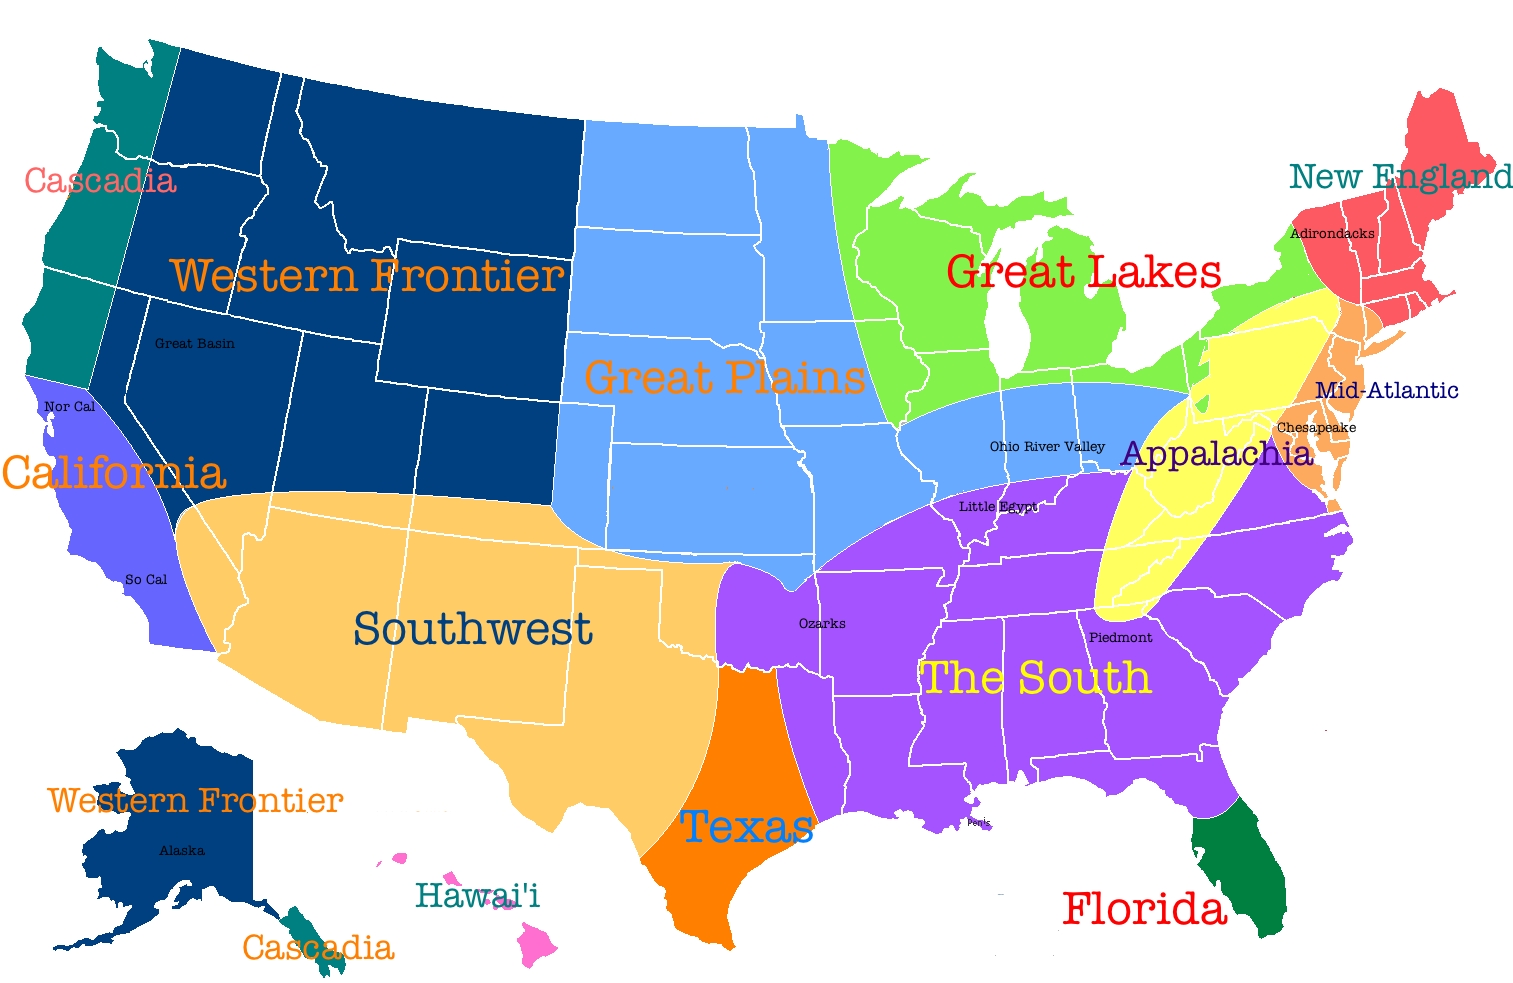 US Regions Map The Five Regions Of USA Lesson Module The Five - Southern region us states map